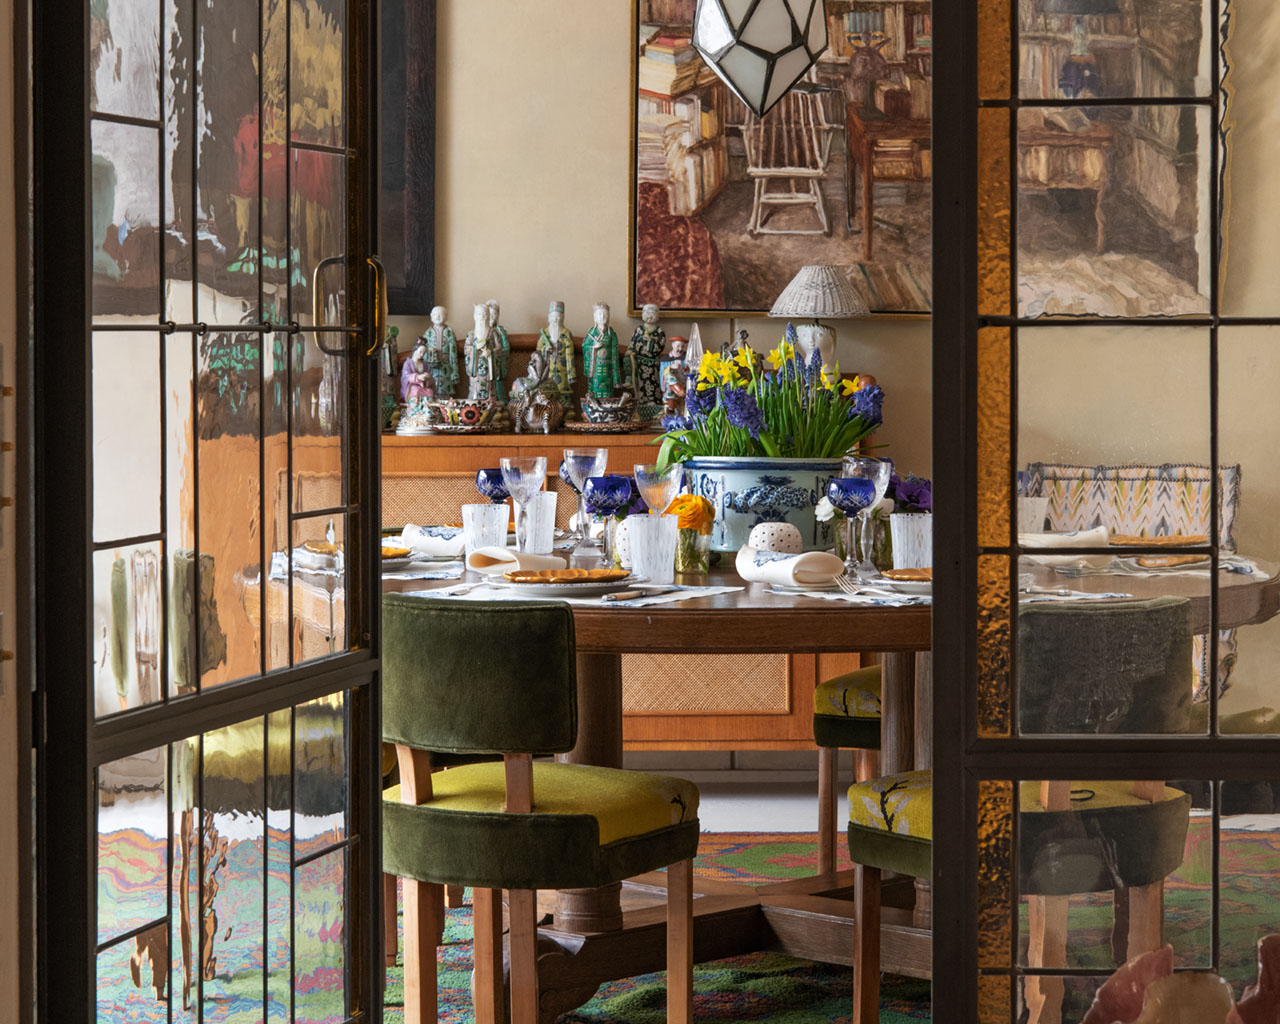 Spring table setting at the Parisian home of TerryDeGunzburg, from the pages of Be My Guest: At Home with the Tastemakers by Pierre Sauvage, Flammarion, 2020